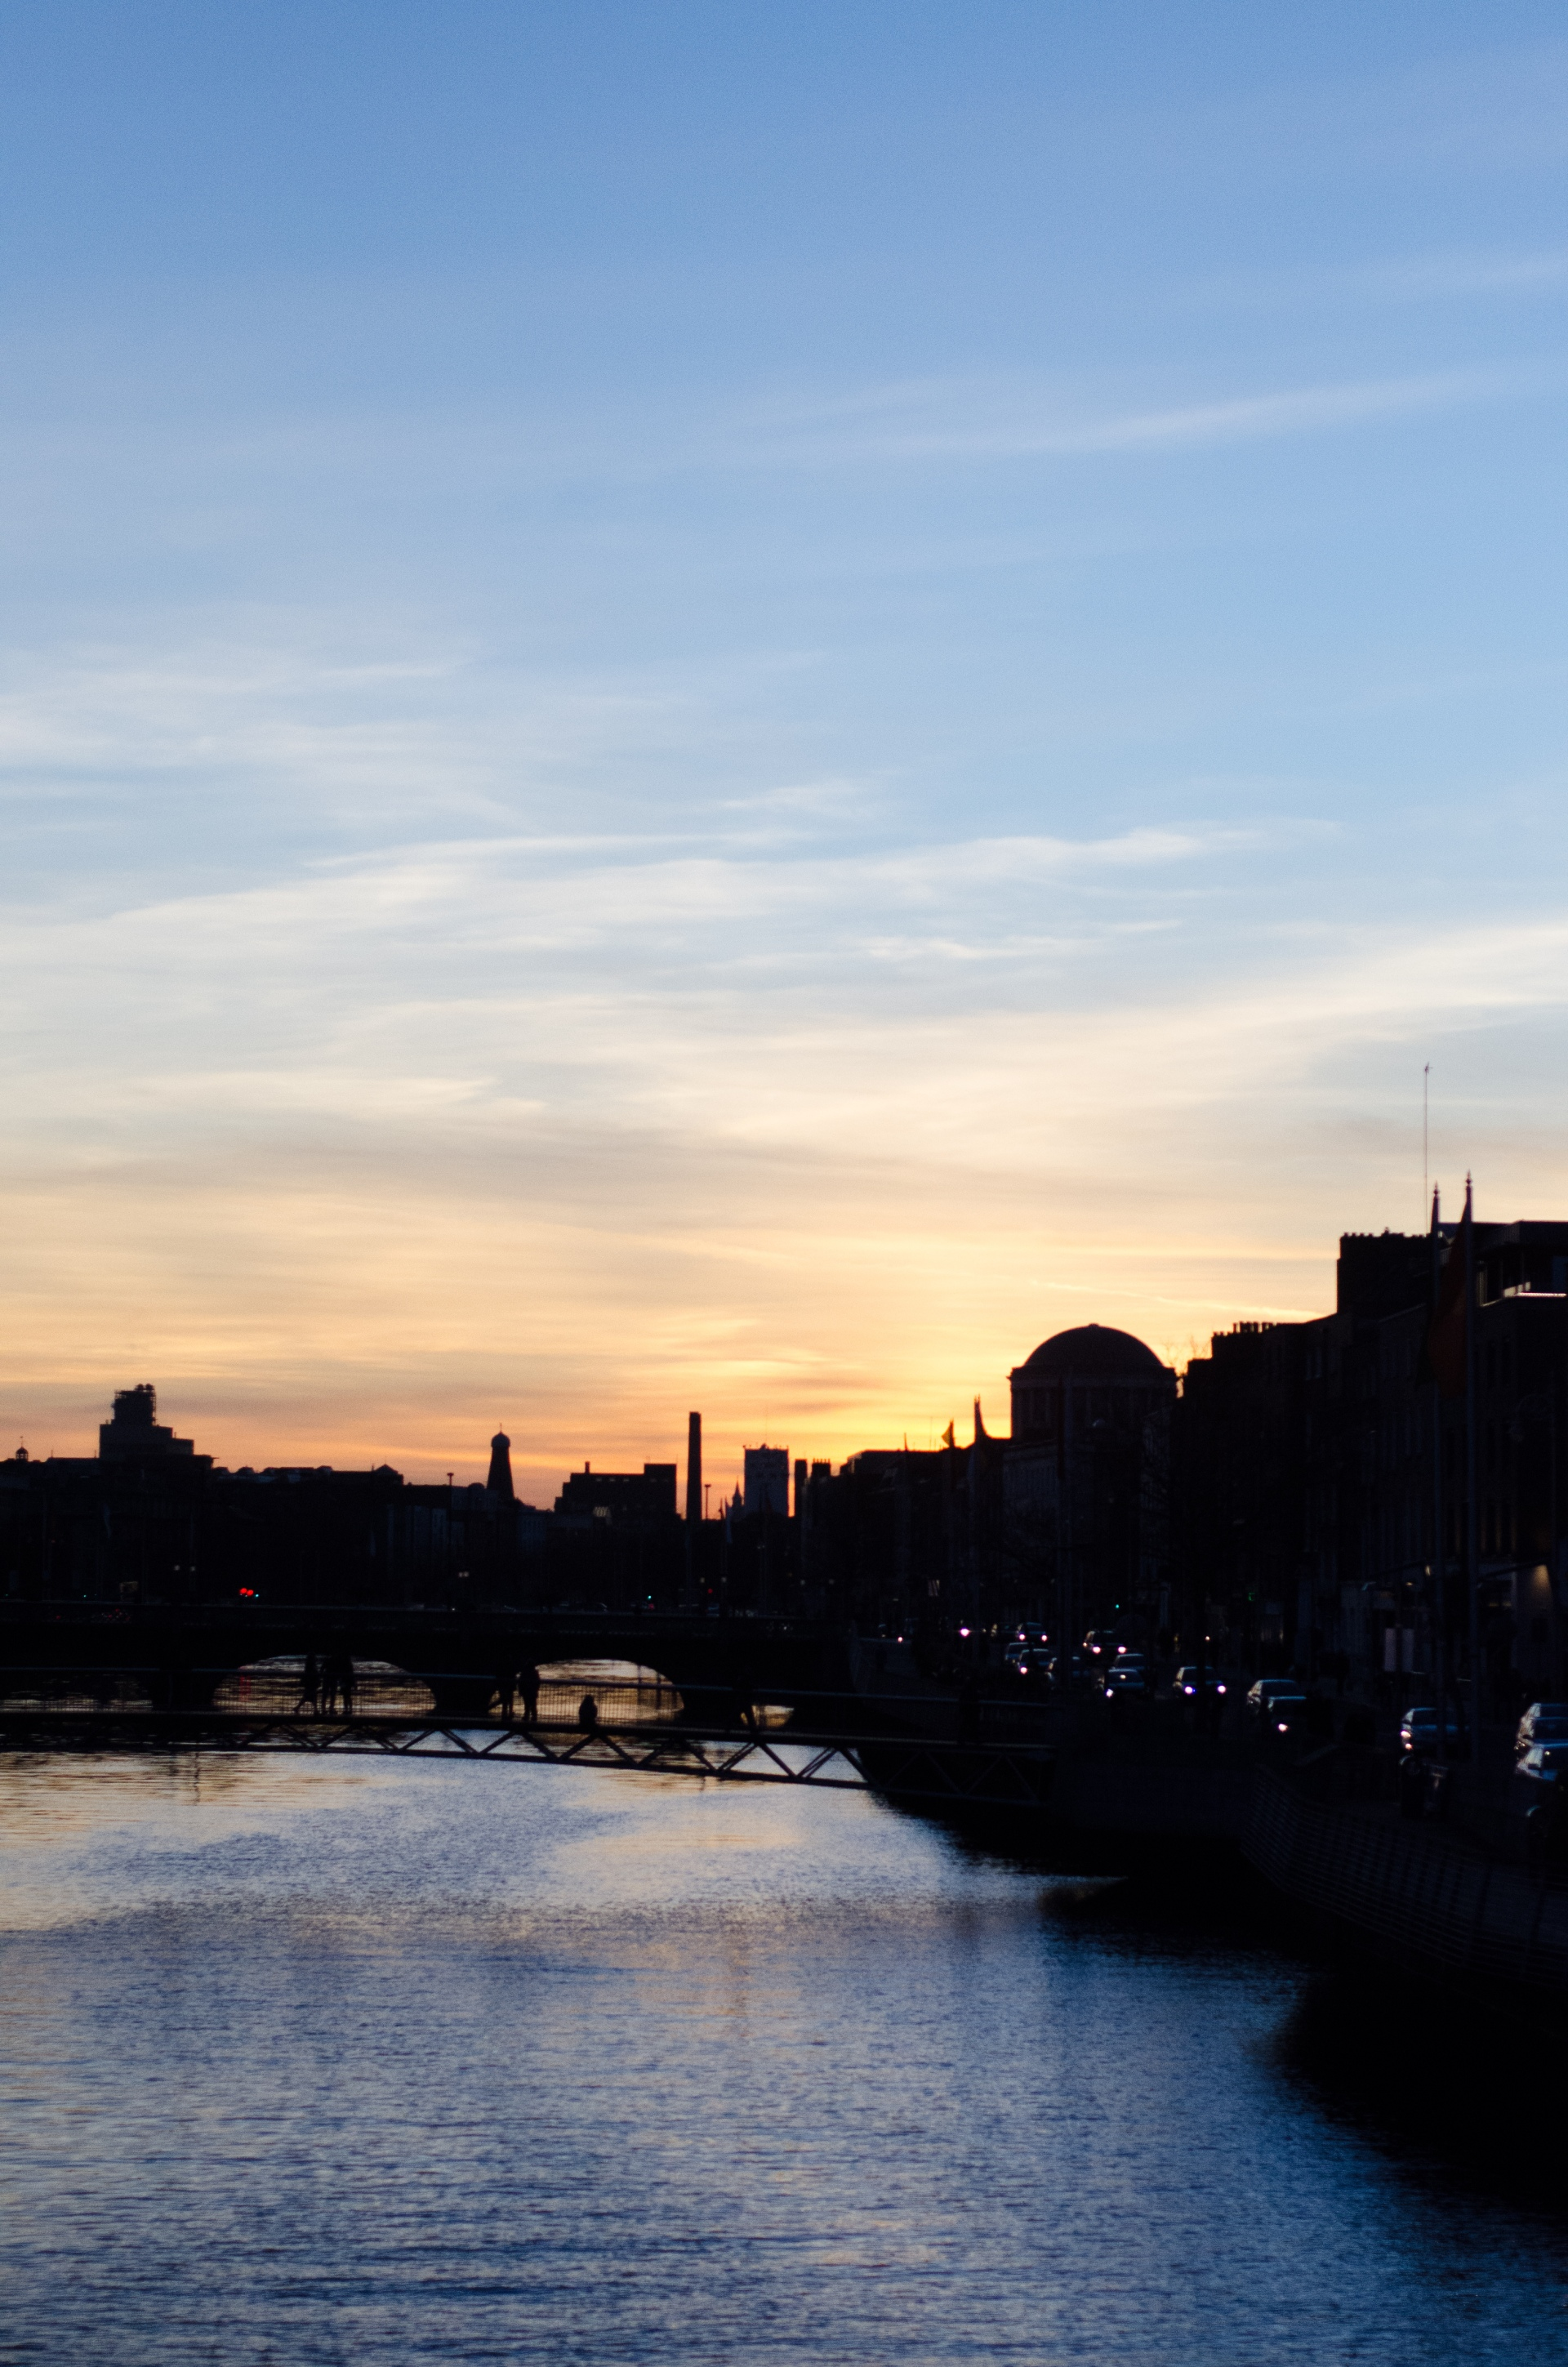 The River Liffey at sunset.